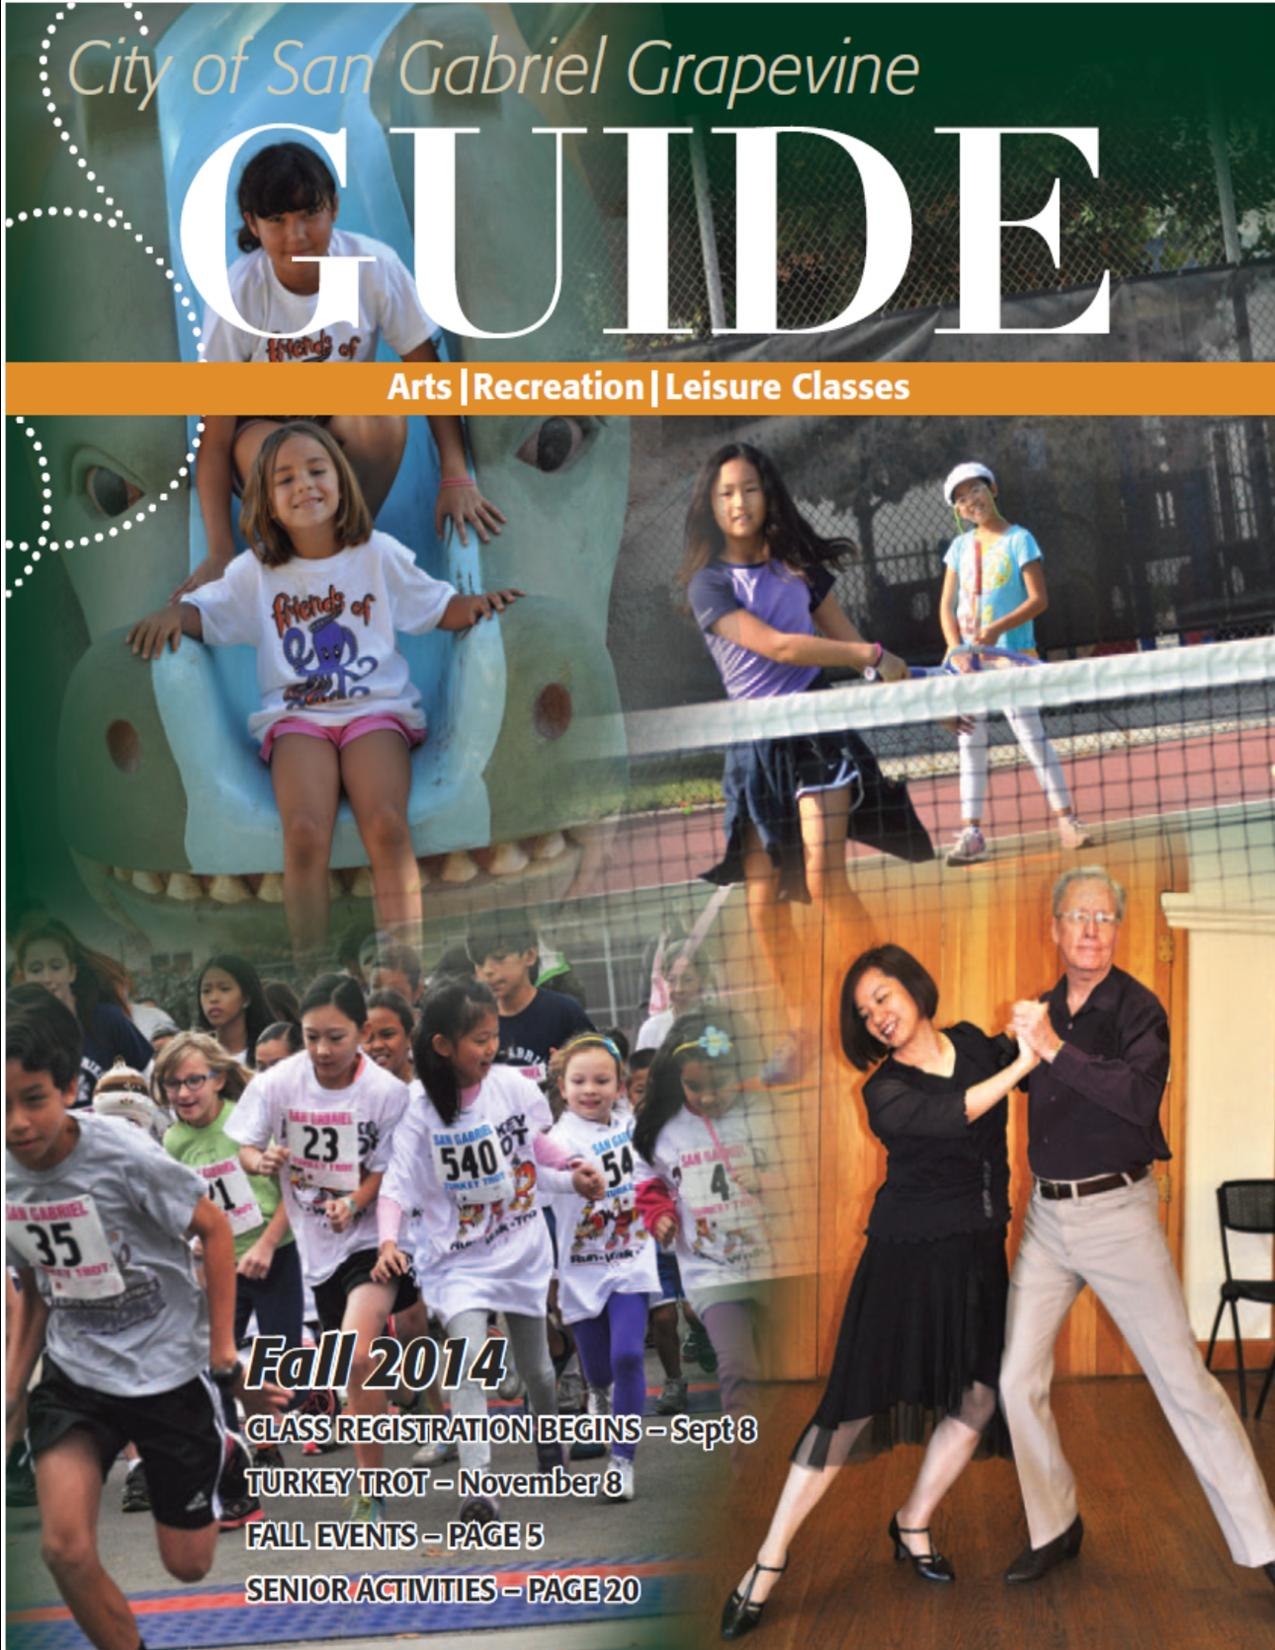 GUIDE Recreation Guide Rec Magazine SG Magazine san gabriel classes san gabriel magazine seniors youth adults community services parks and community services turkey trot